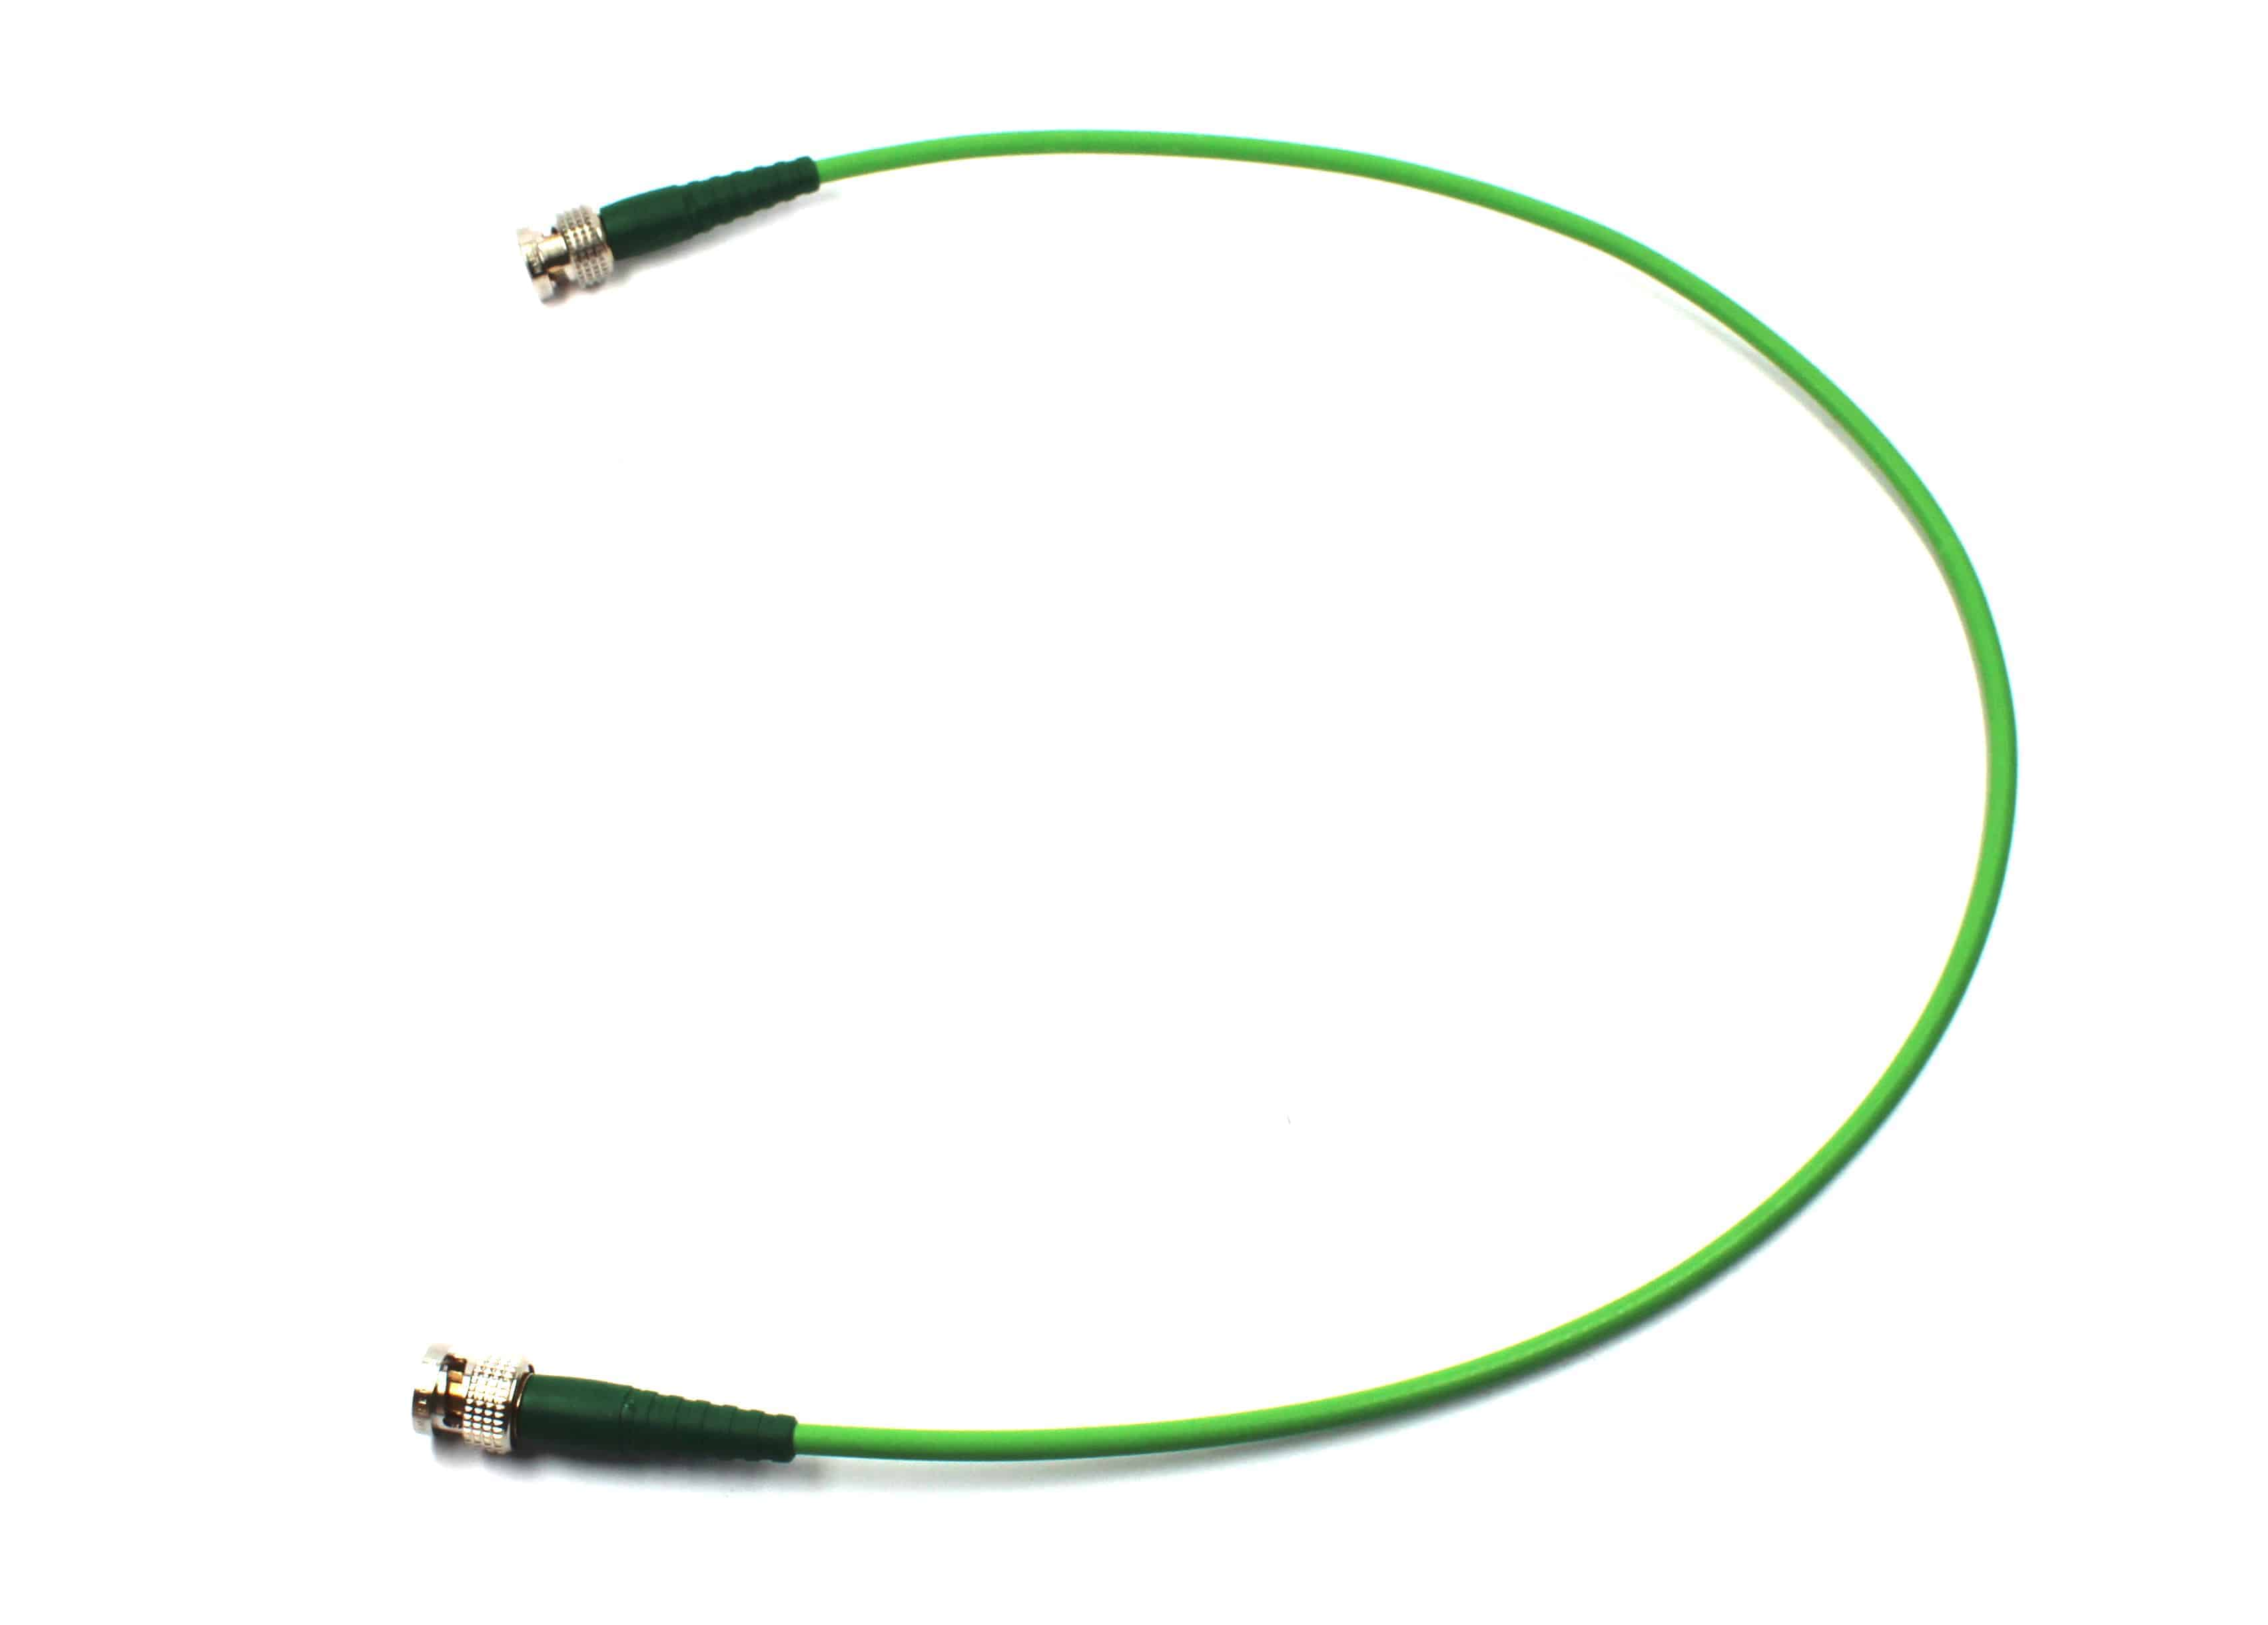 BNCpro Patch Cable ULTRA HD Pro 50